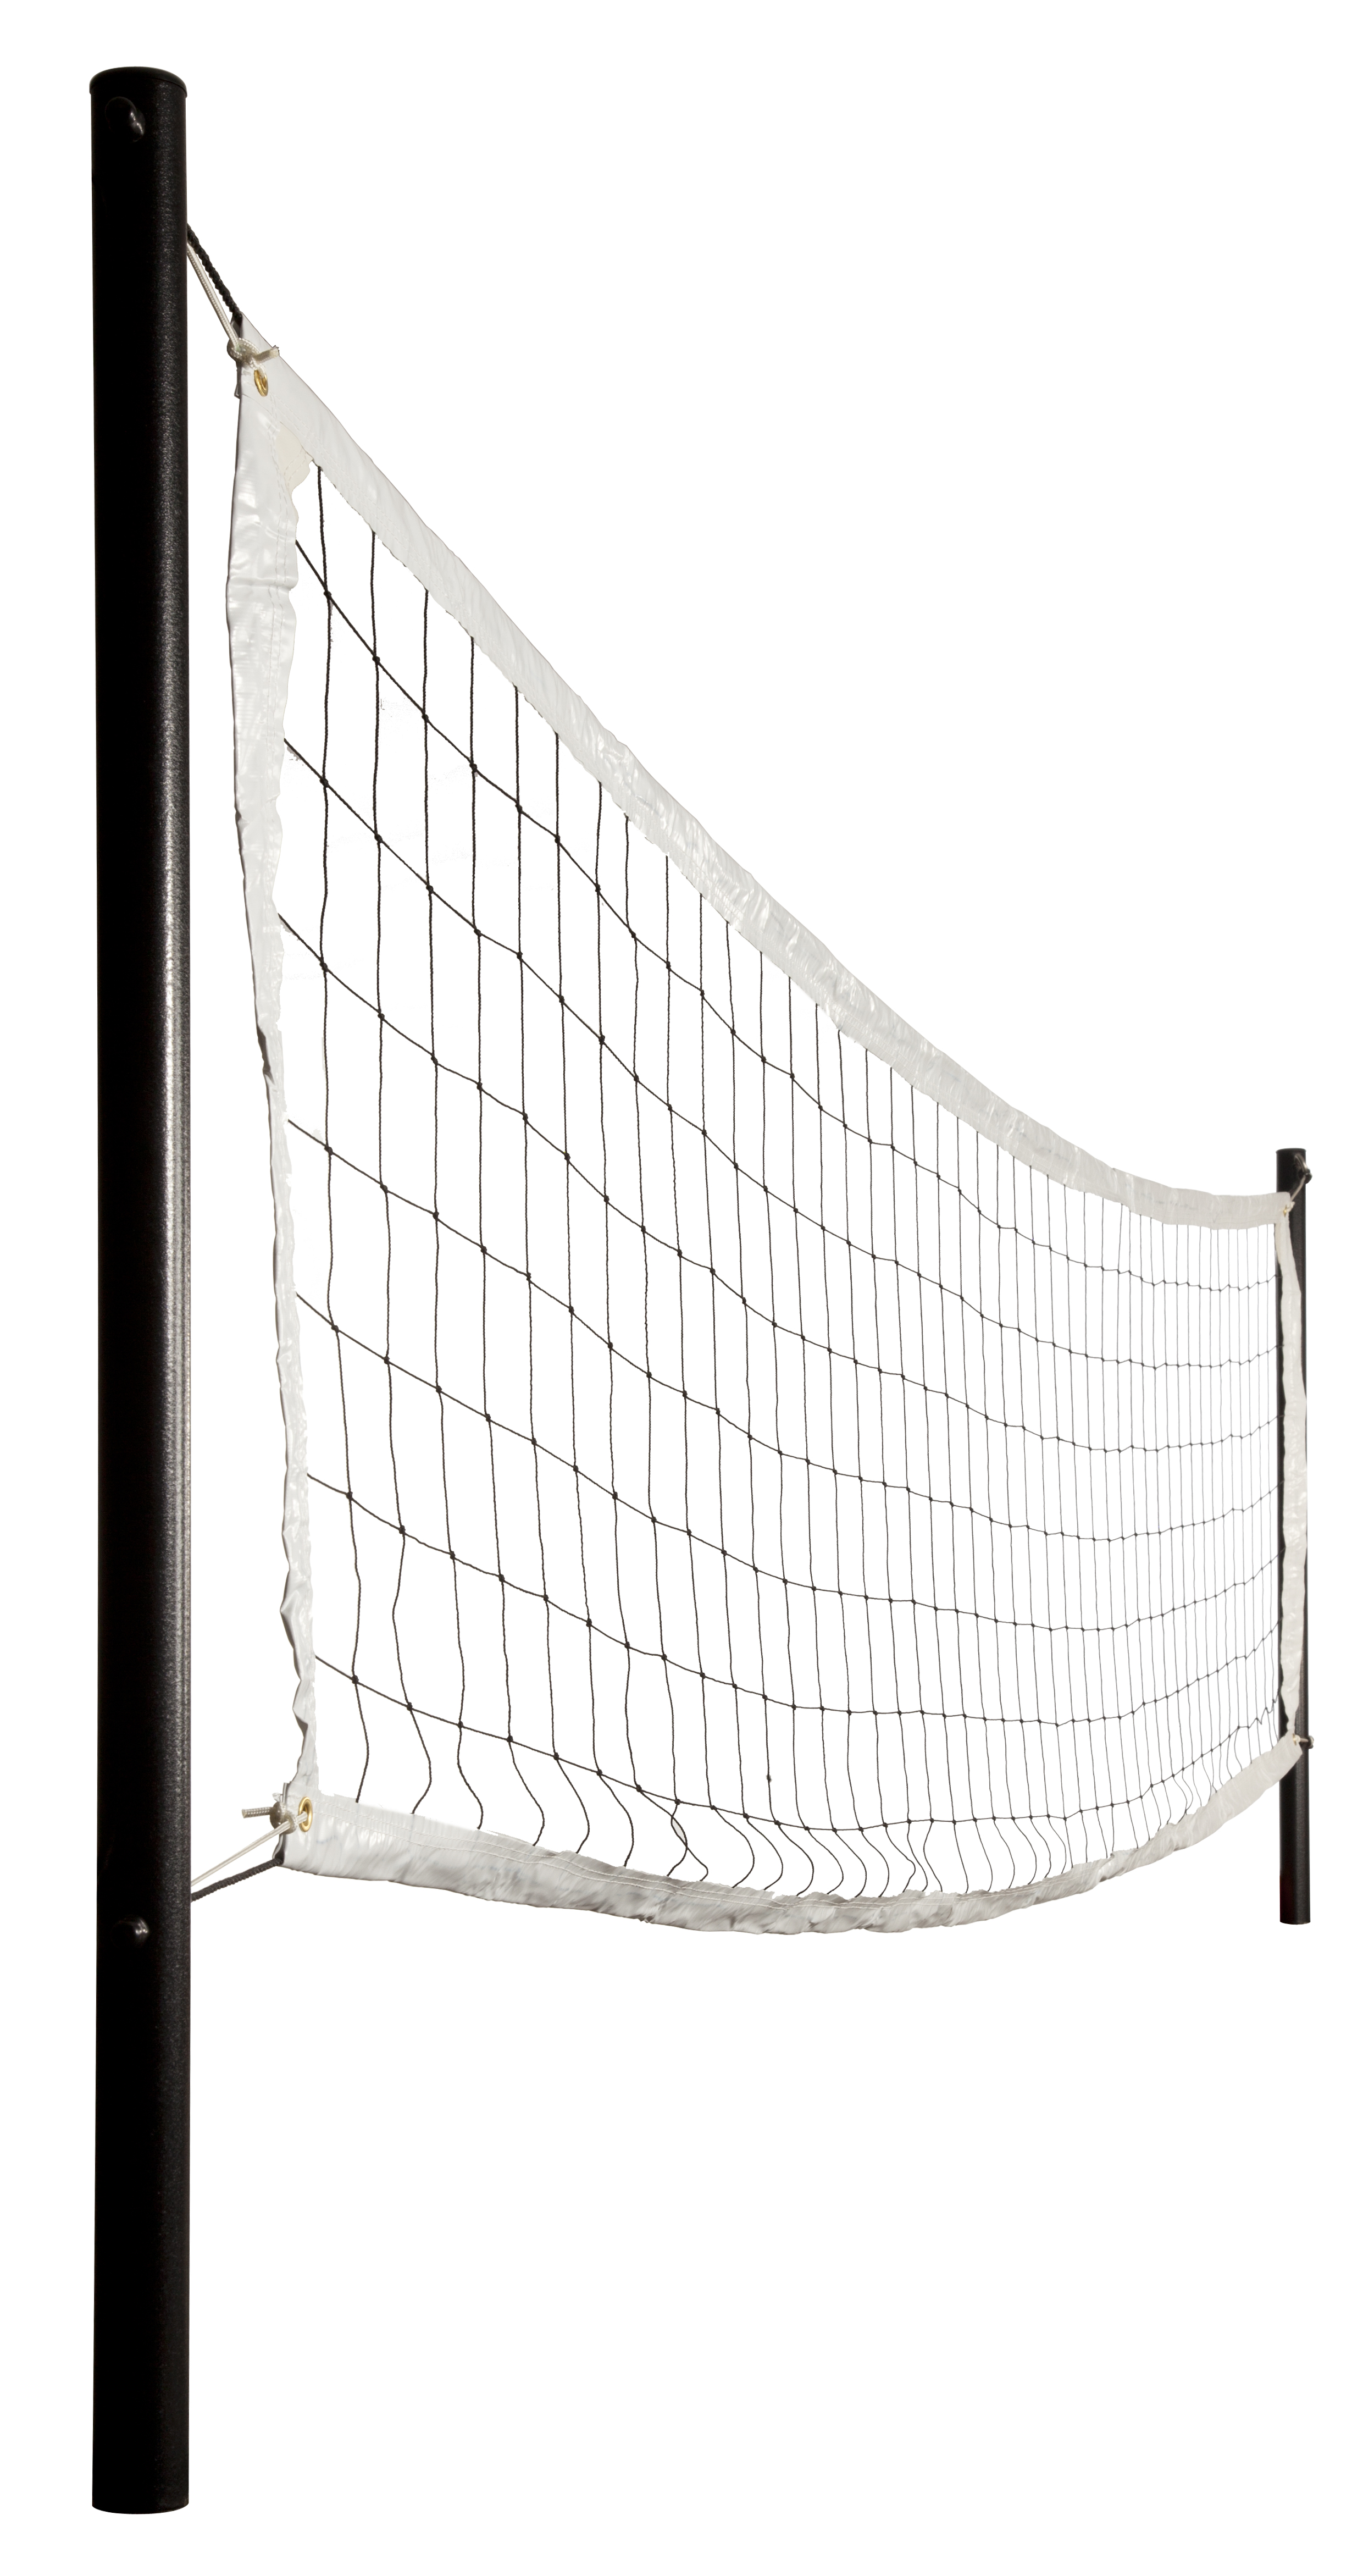 Free Volleyball Net Download Free Clip Art Free Clip Art